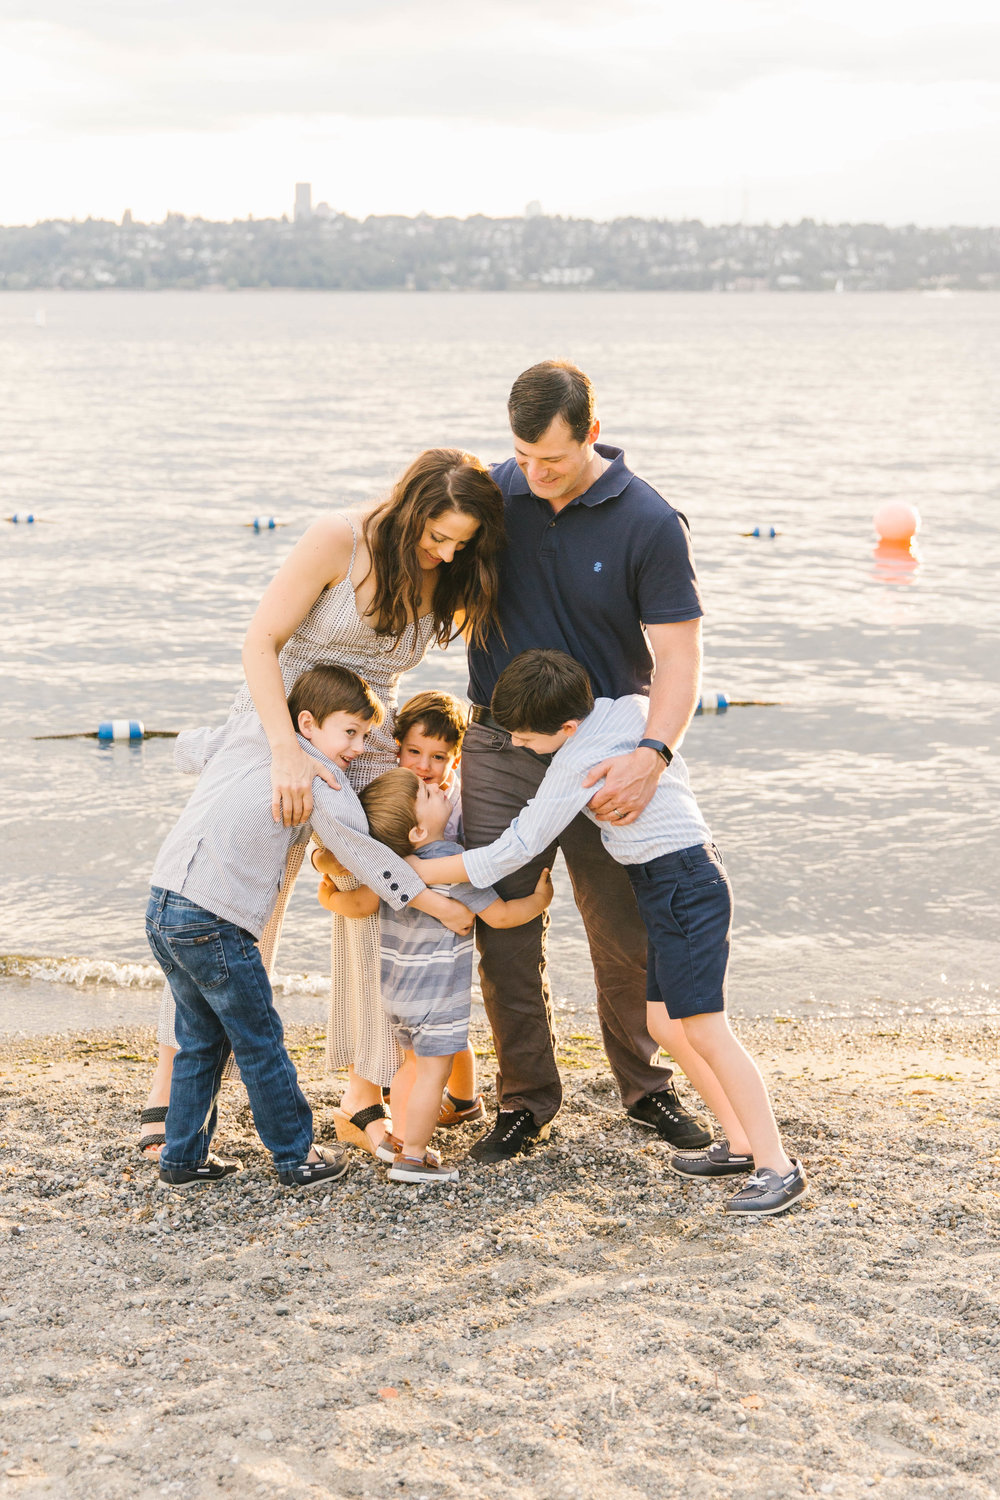 Seattle Family Photography Beach Session Golden Hour Natural Light, Mom and Boys, sunset on the water by Chelsea Macor Photography-6.jpg